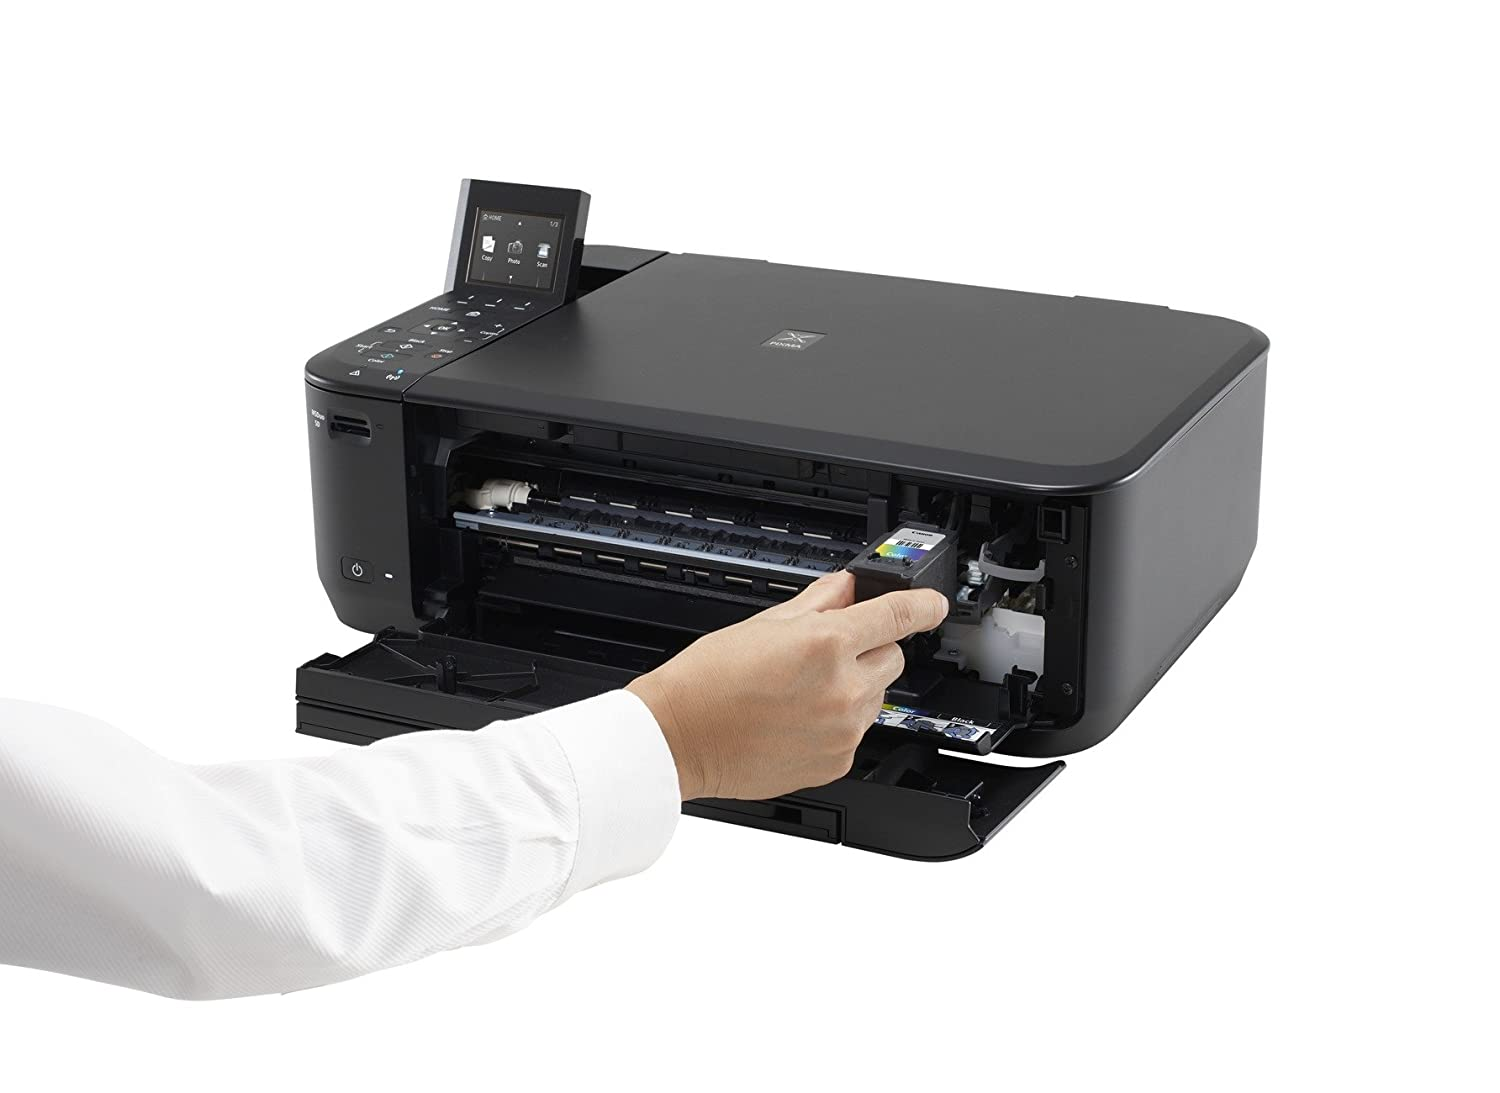 Canon PIXMA MG4250 - Impresora multifunción de Tinta - B/N 9.9 PPM, Color 5.7 PPM, Color Negro